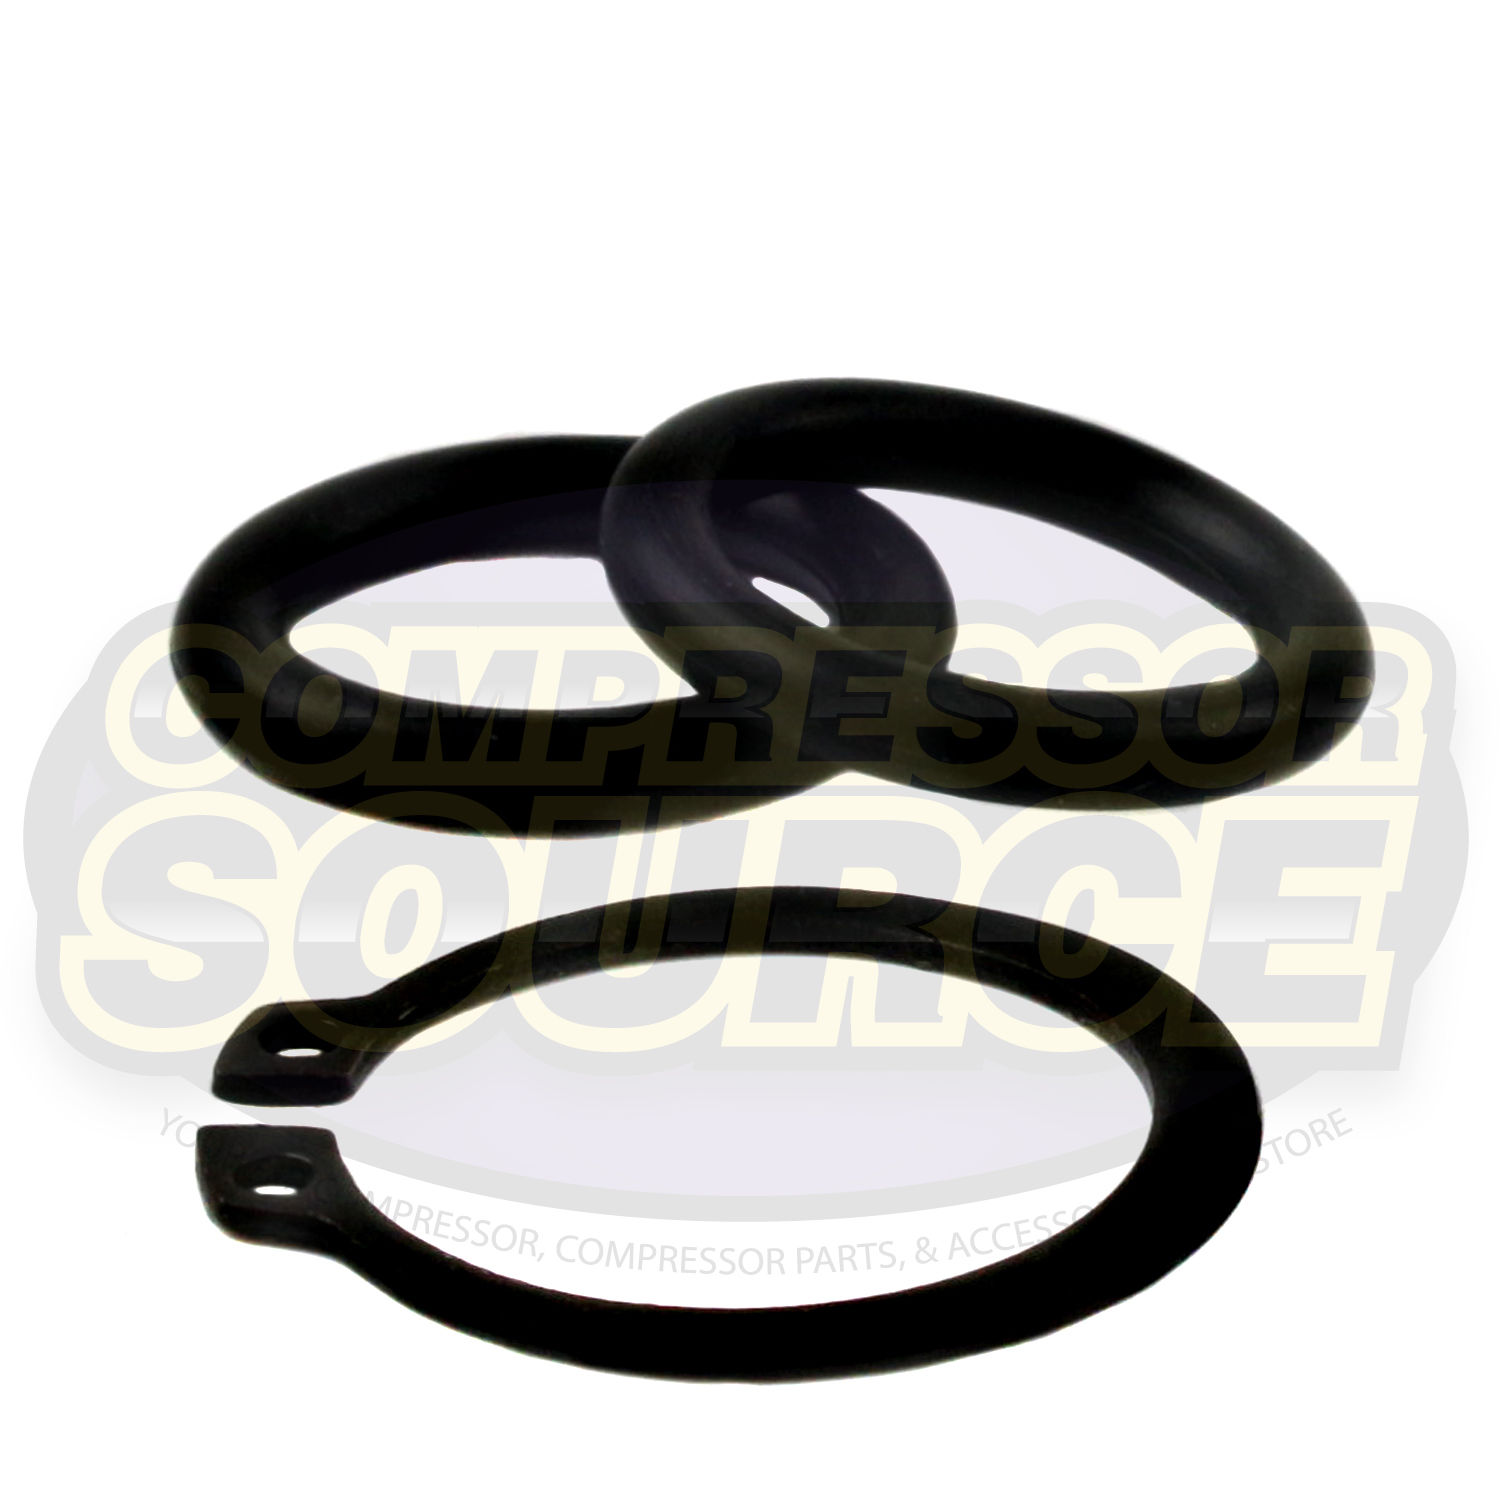 New Goodyear 3 8 Swivel O Ring Seal Replacement 99043 Hose Reel